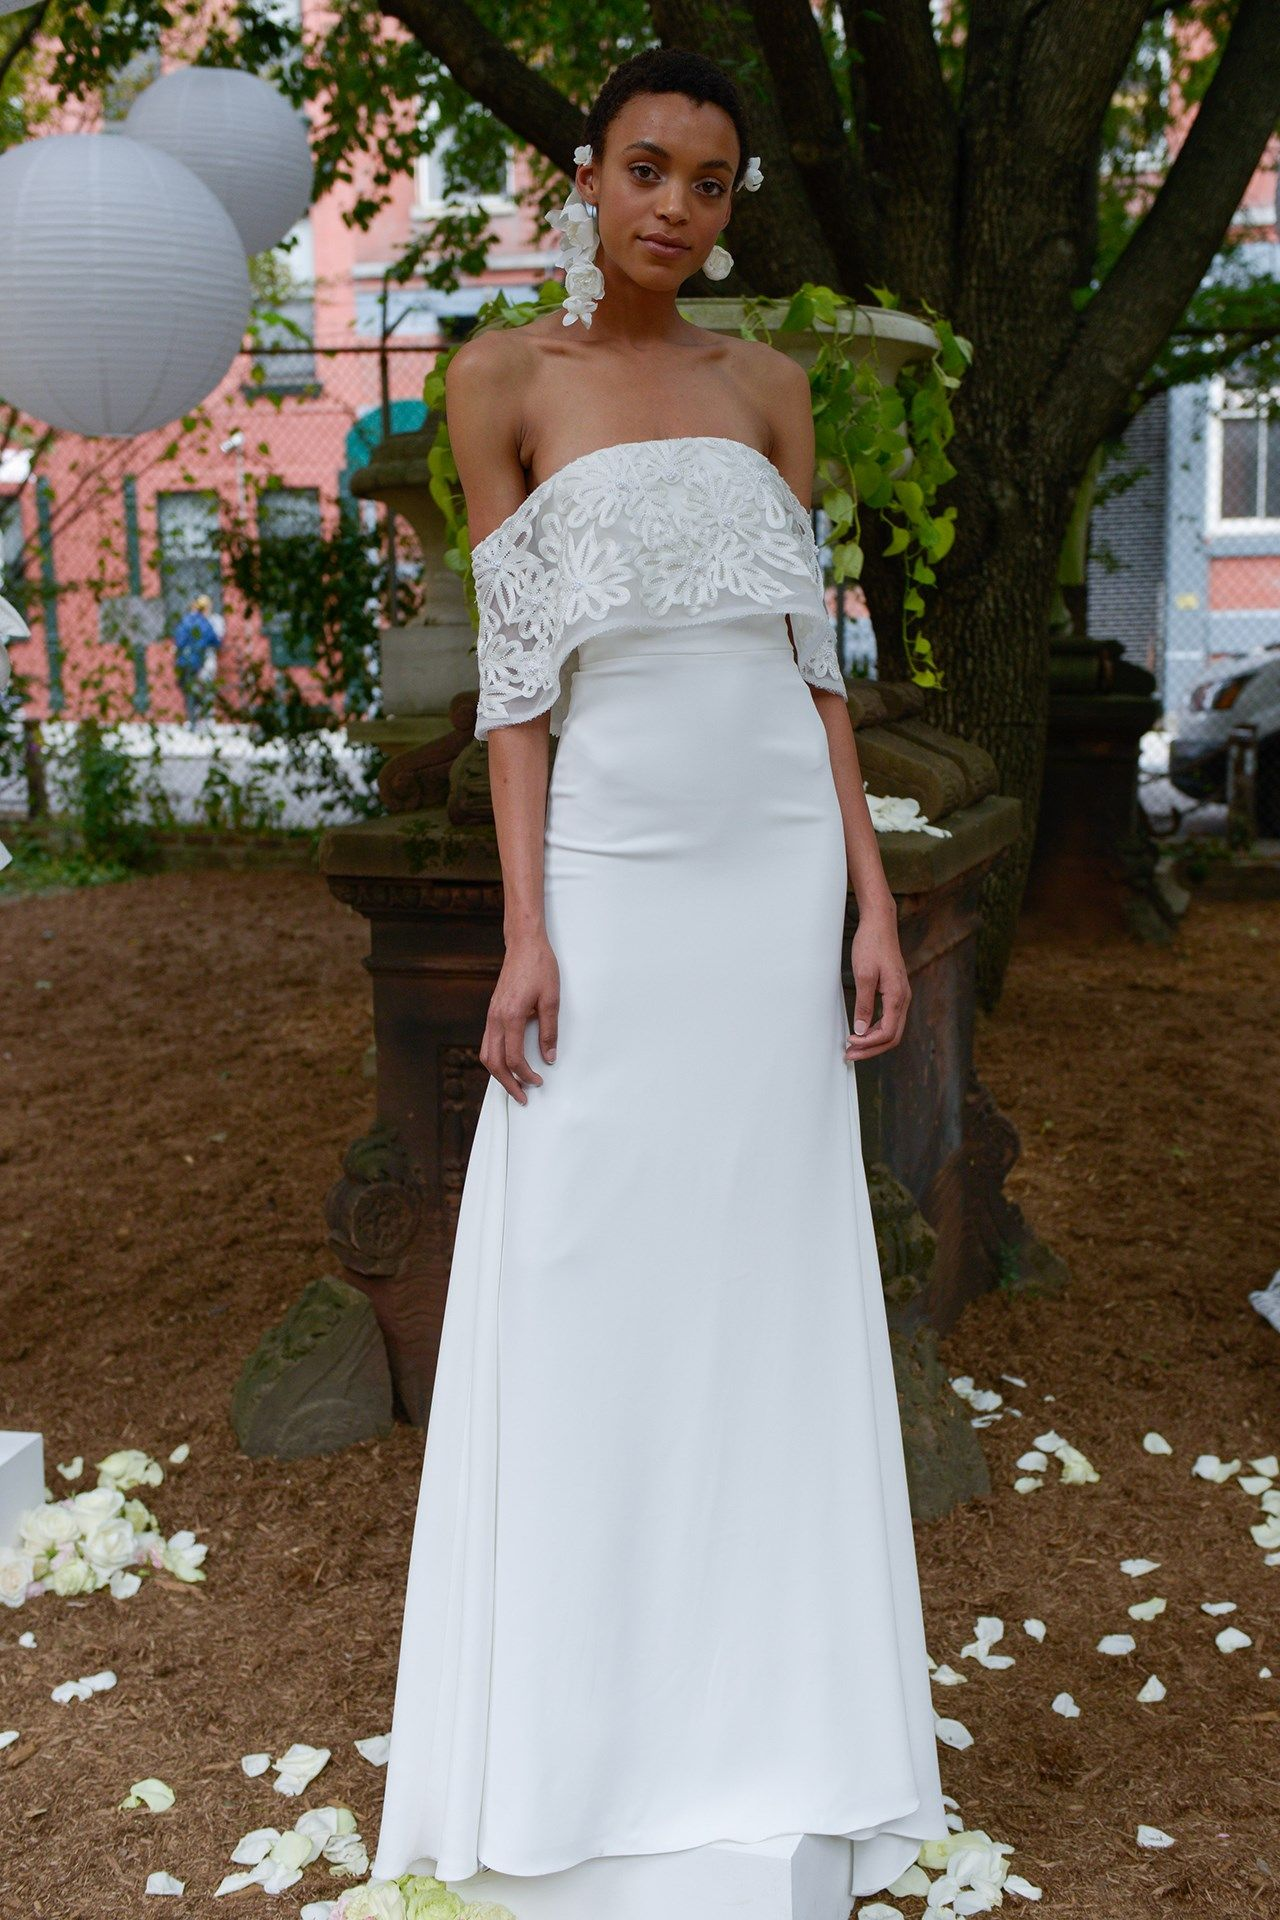 Wedding dresses trends the stylish gowns you need to see